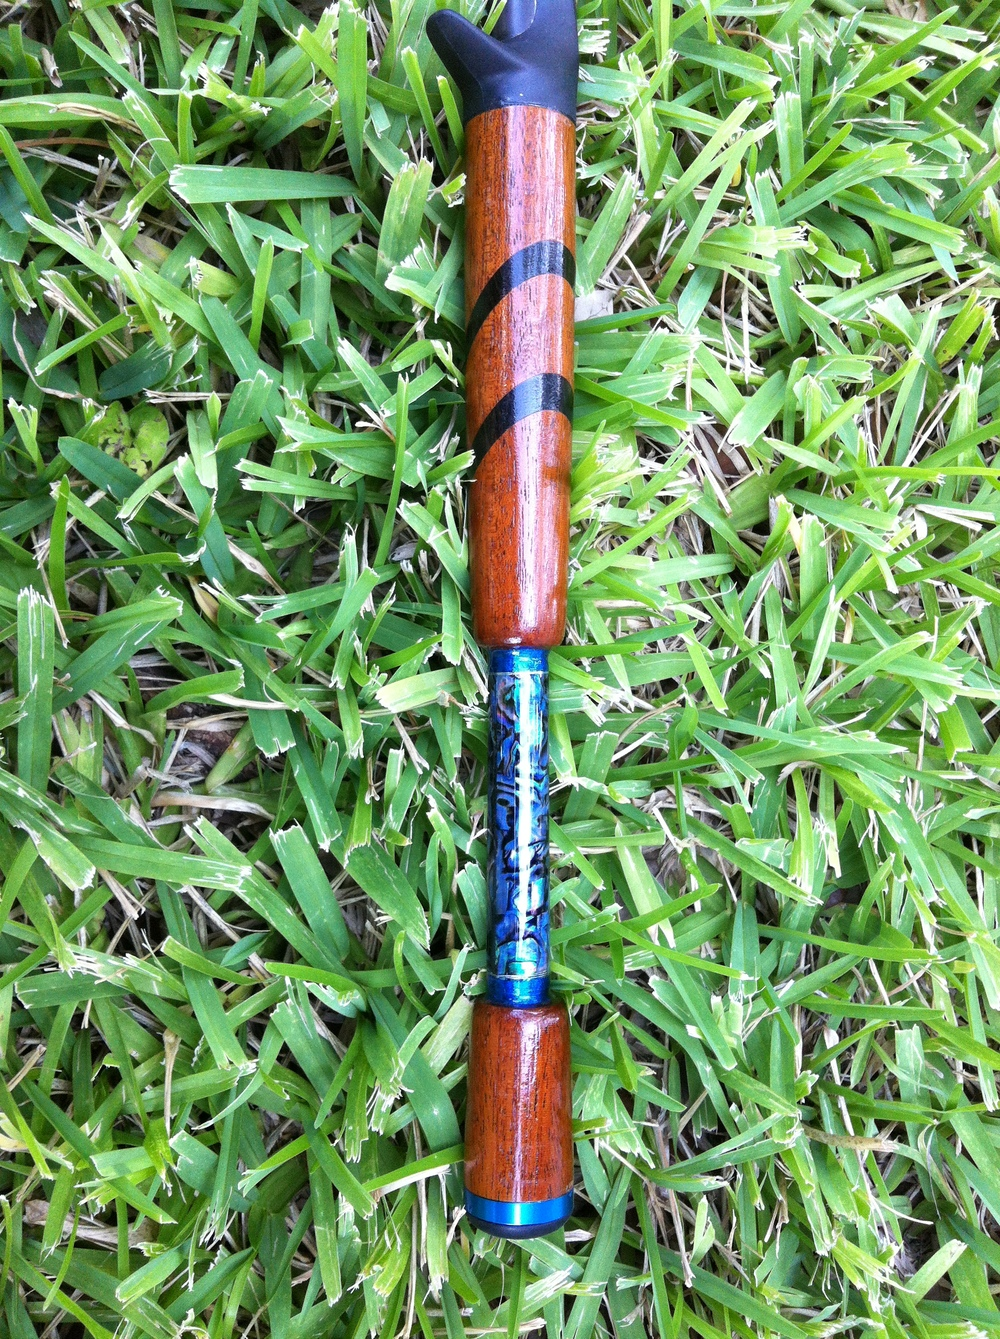 A Cherry wood handle with Abalone Shell insert.